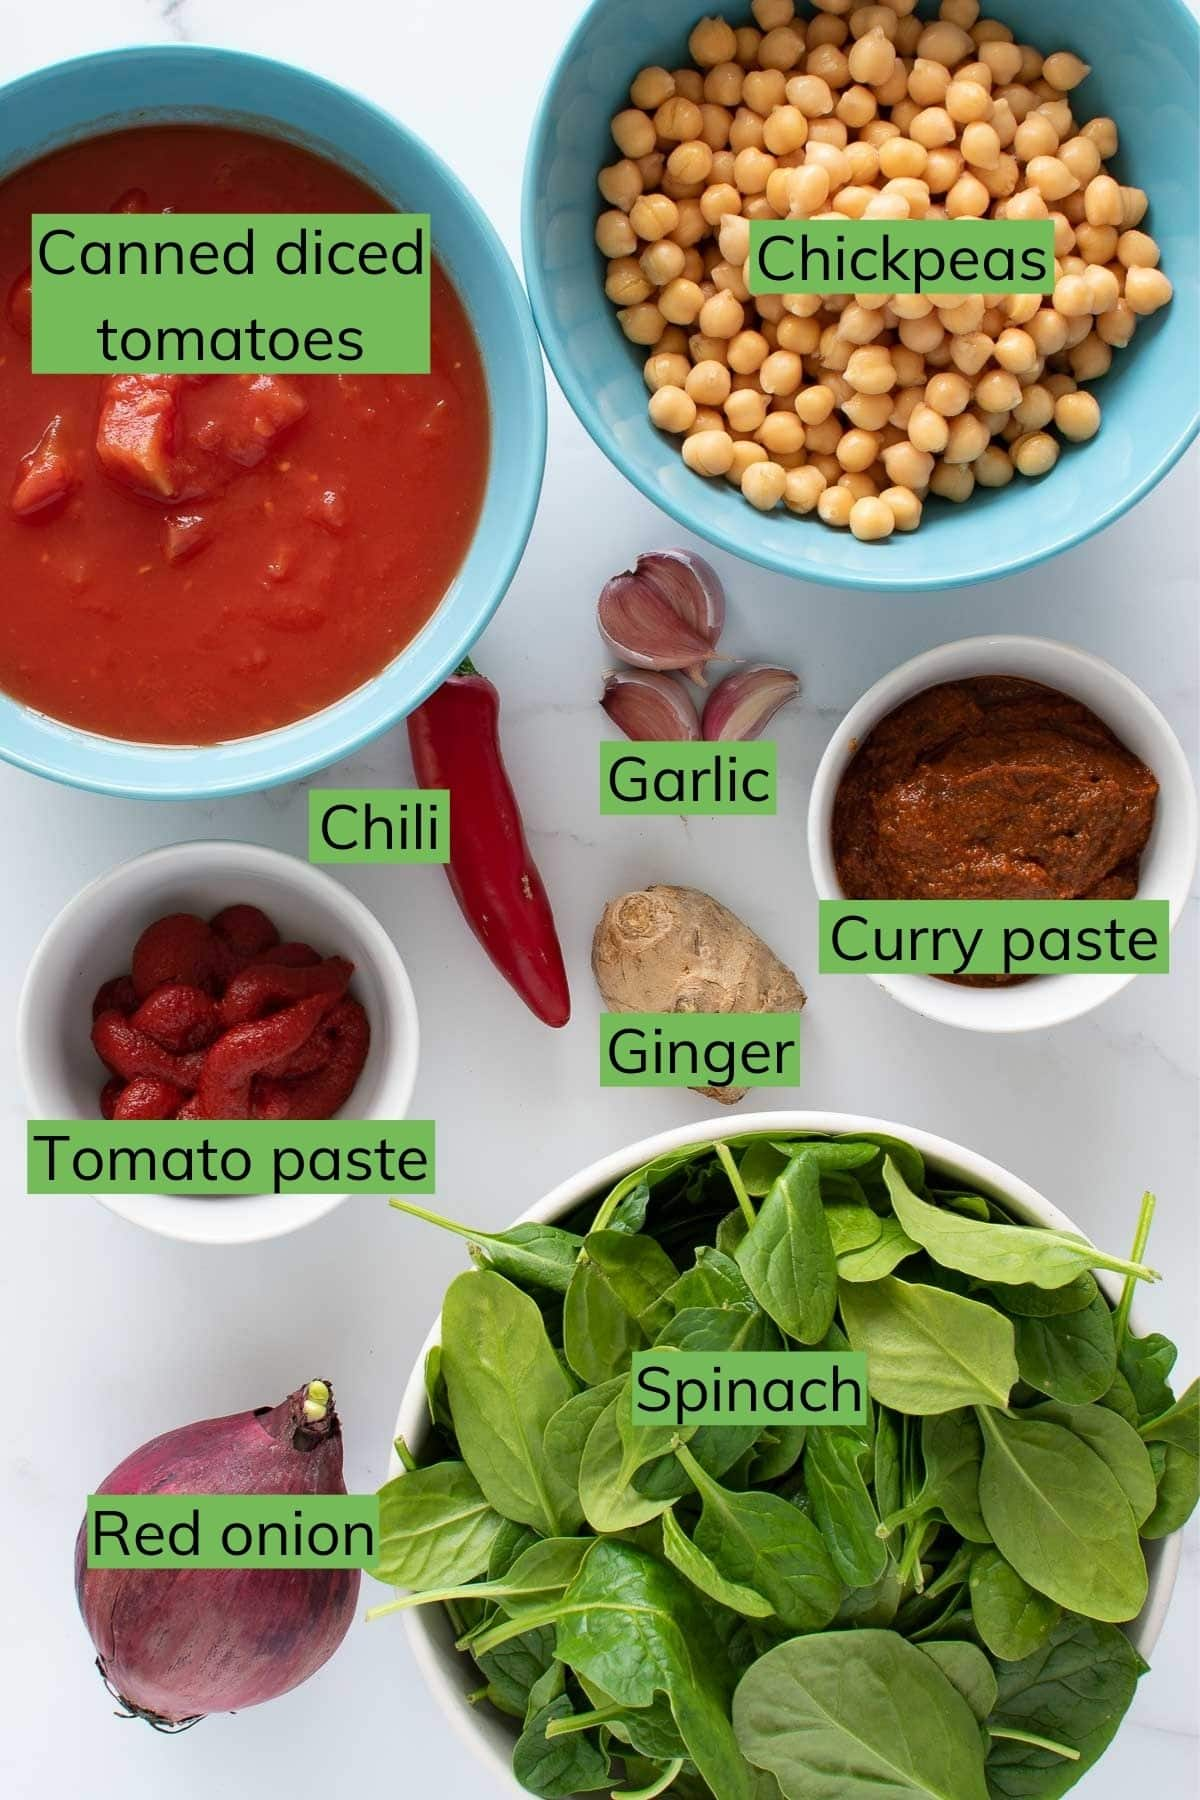 The ingredients needed to make vegetarian curry with spinach and chickpeas.